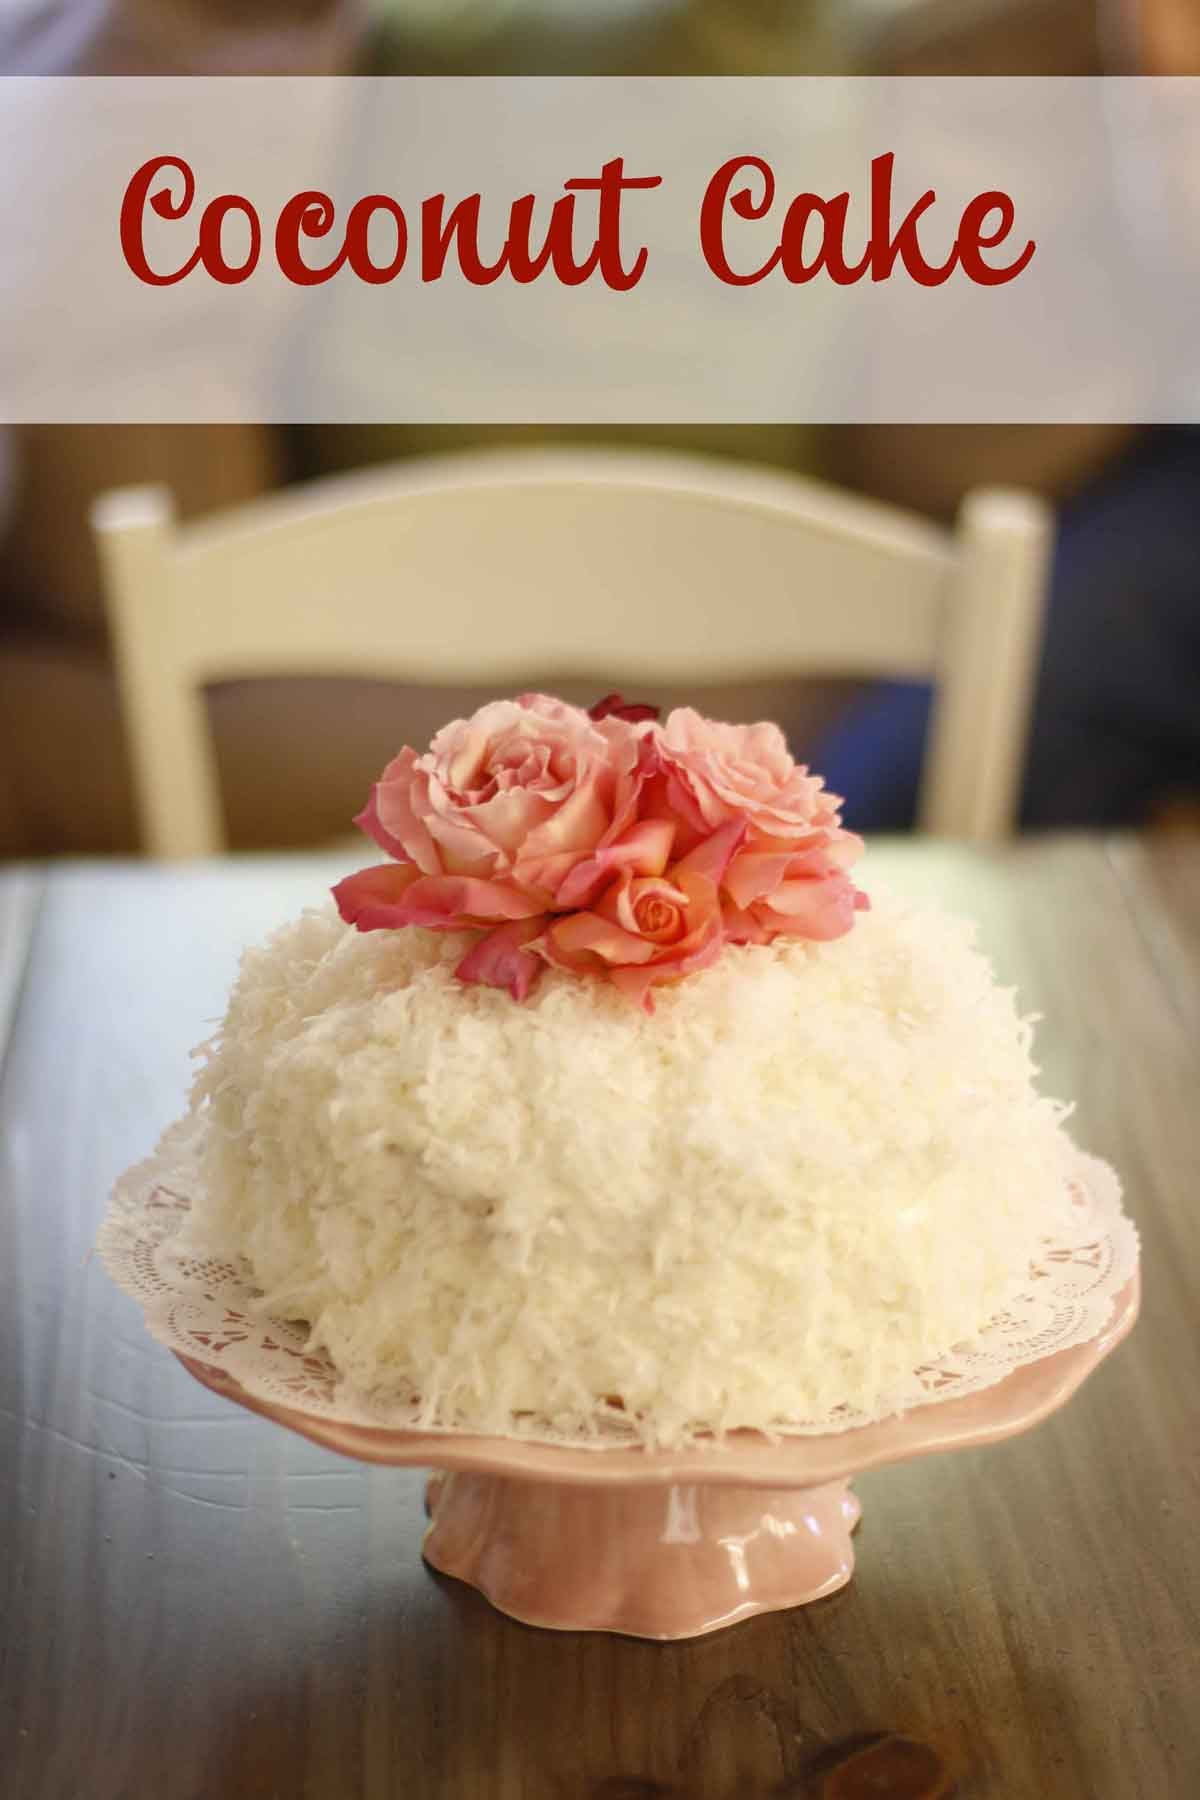 Coconut Cake from Bon Appetite Magazine. TO DIE FOR.